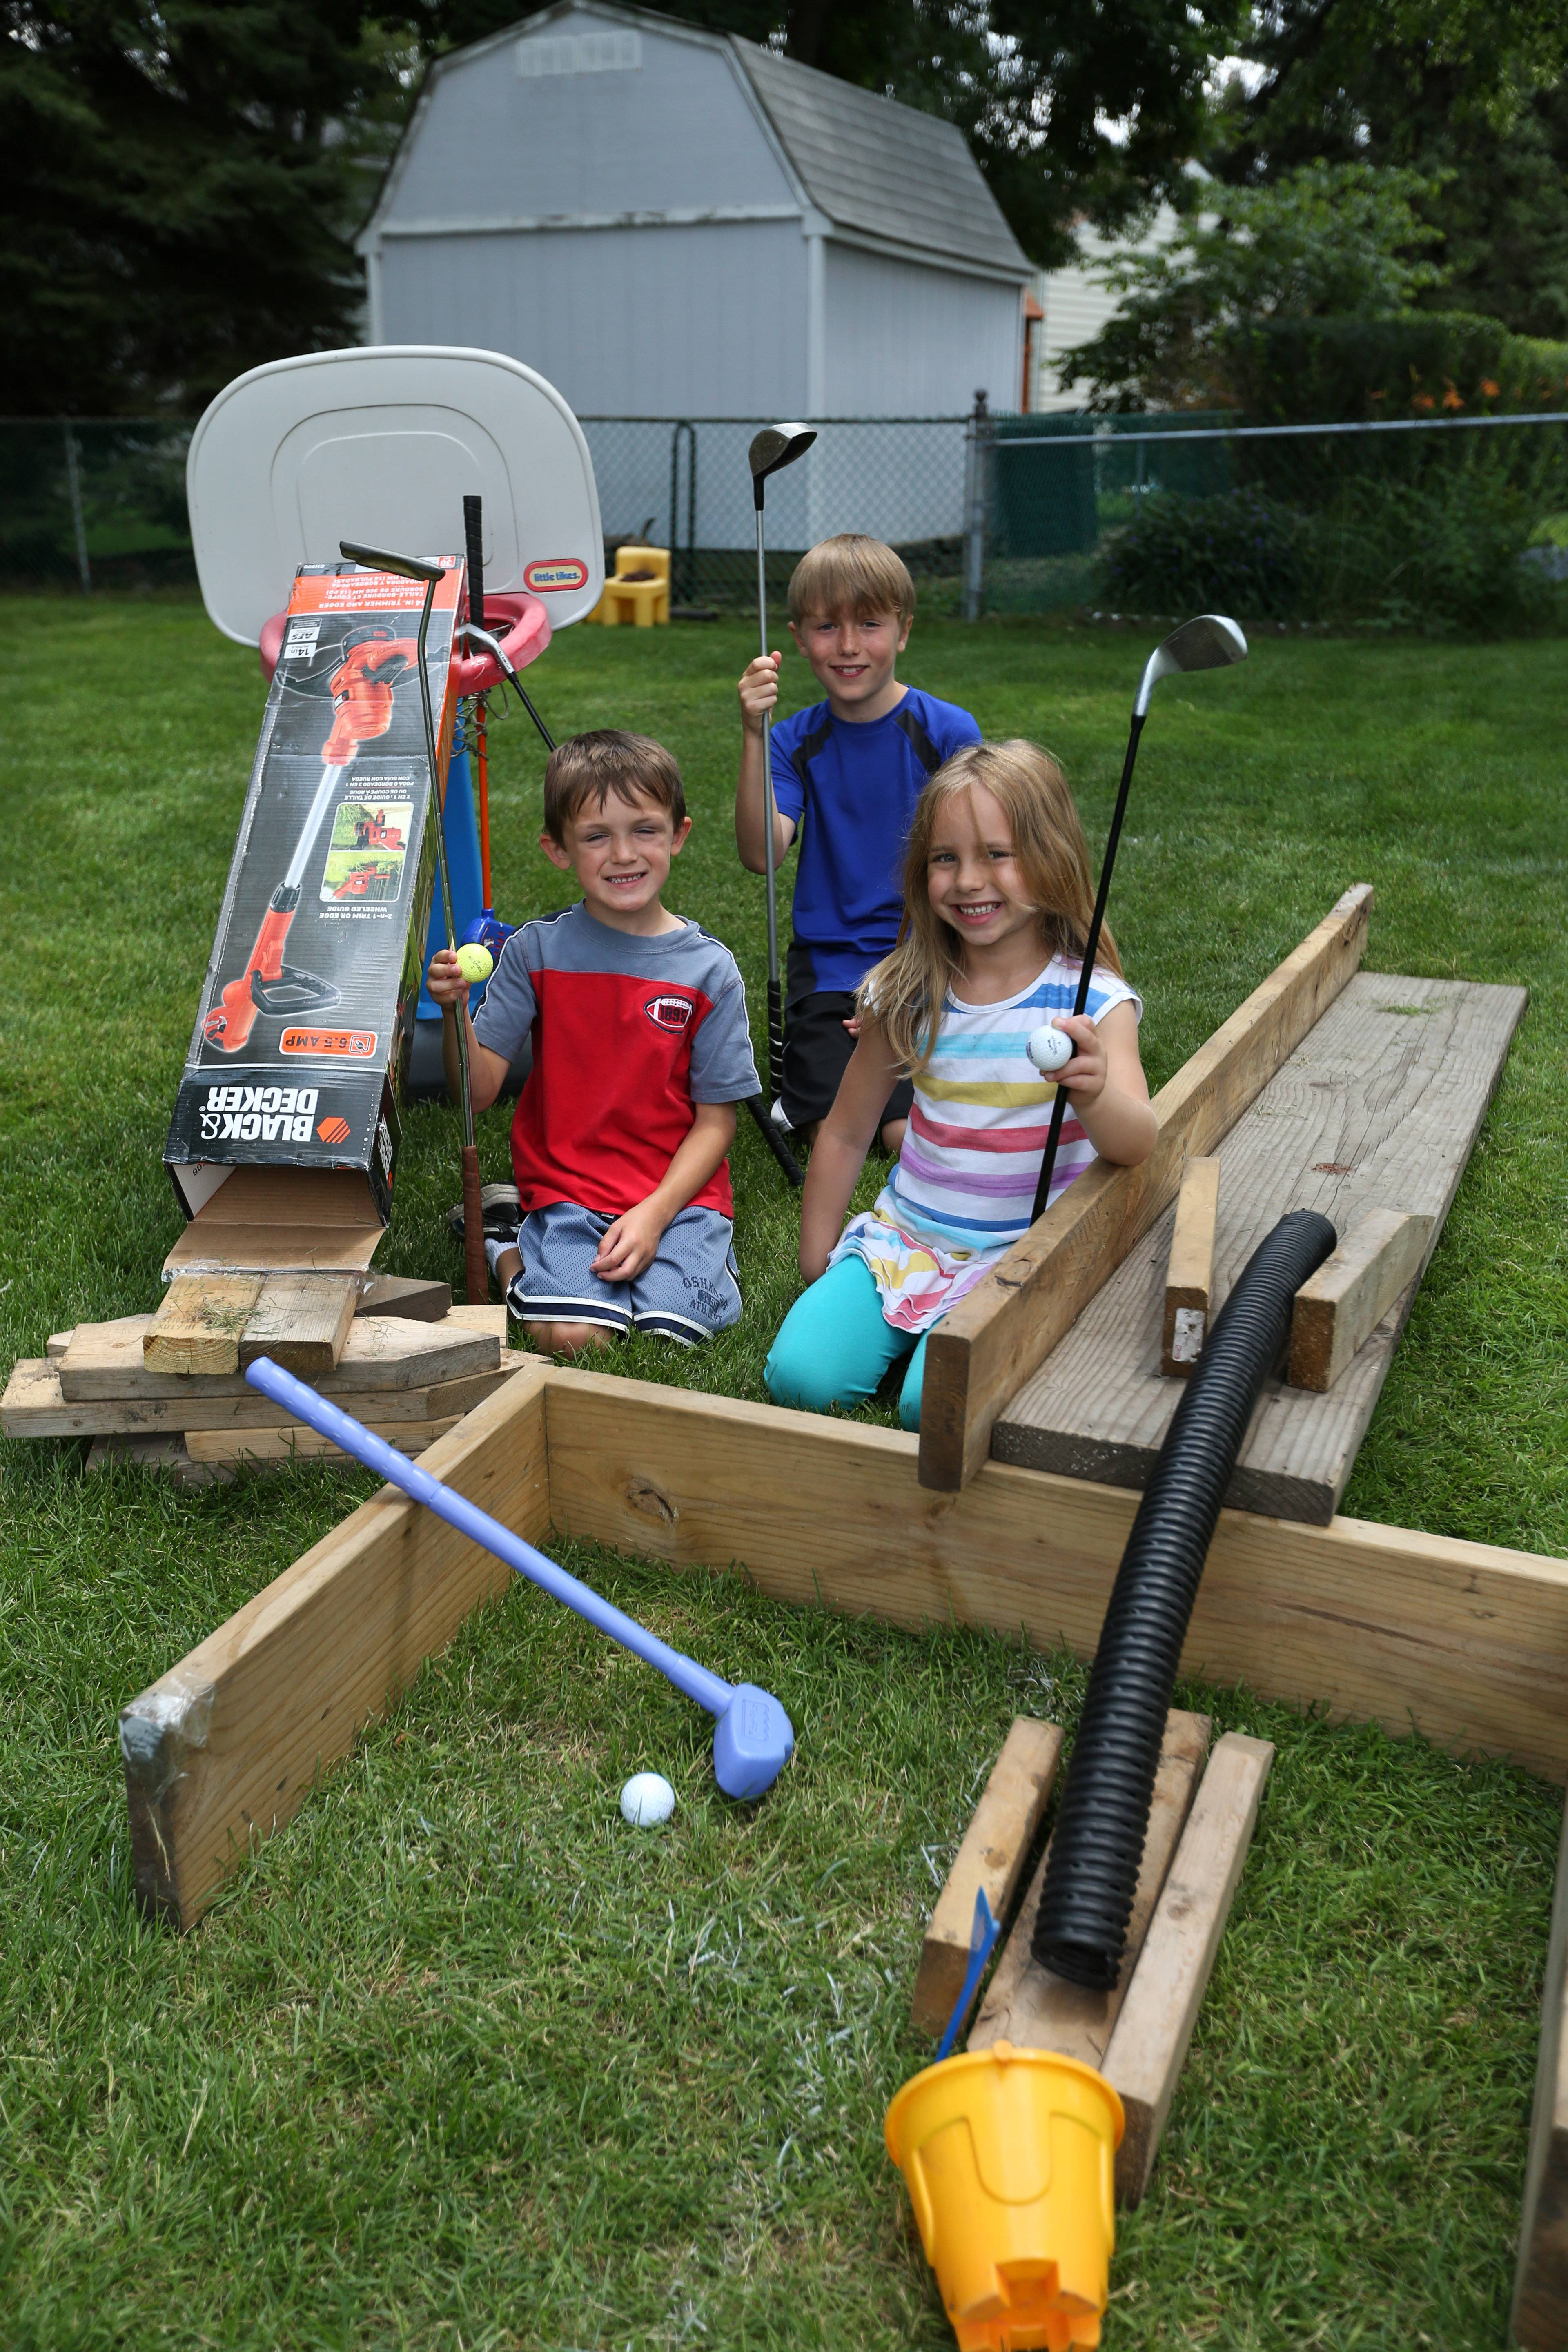 Rylan Williams, 9, background, his brother Caden, 5, left, and friend Lily Anderson, 6, created a homemade mini golf course made out of boards, a basketball hoop, tubes, buckets, and other items.